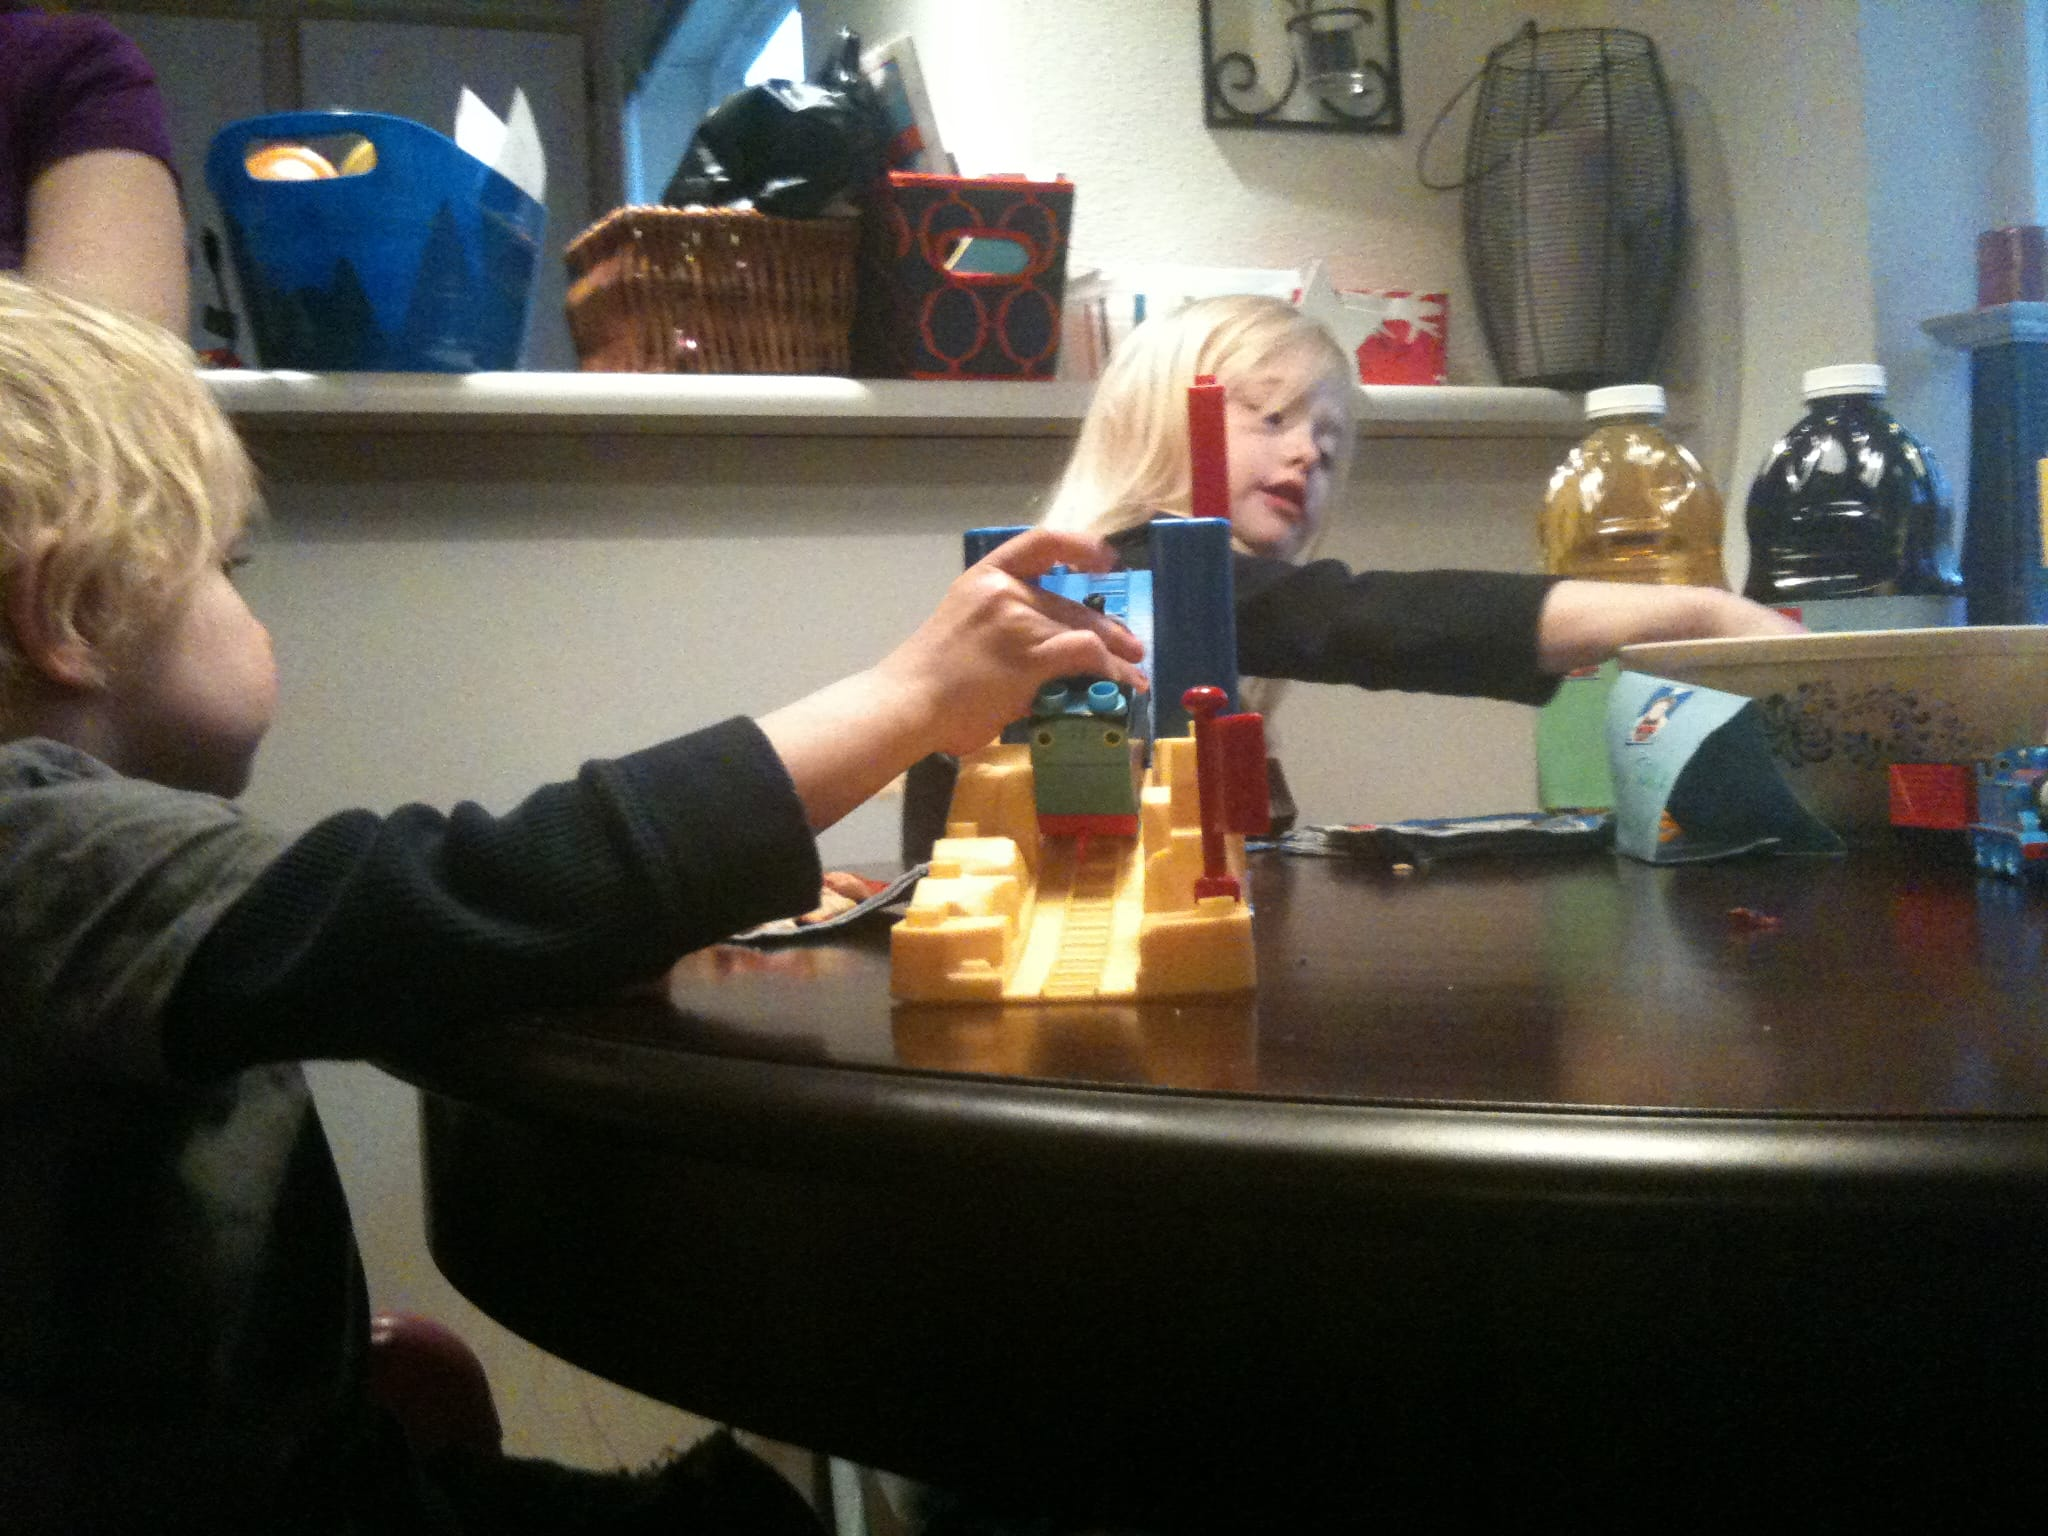 Mega Bloks + a rainy afternoon = fun!